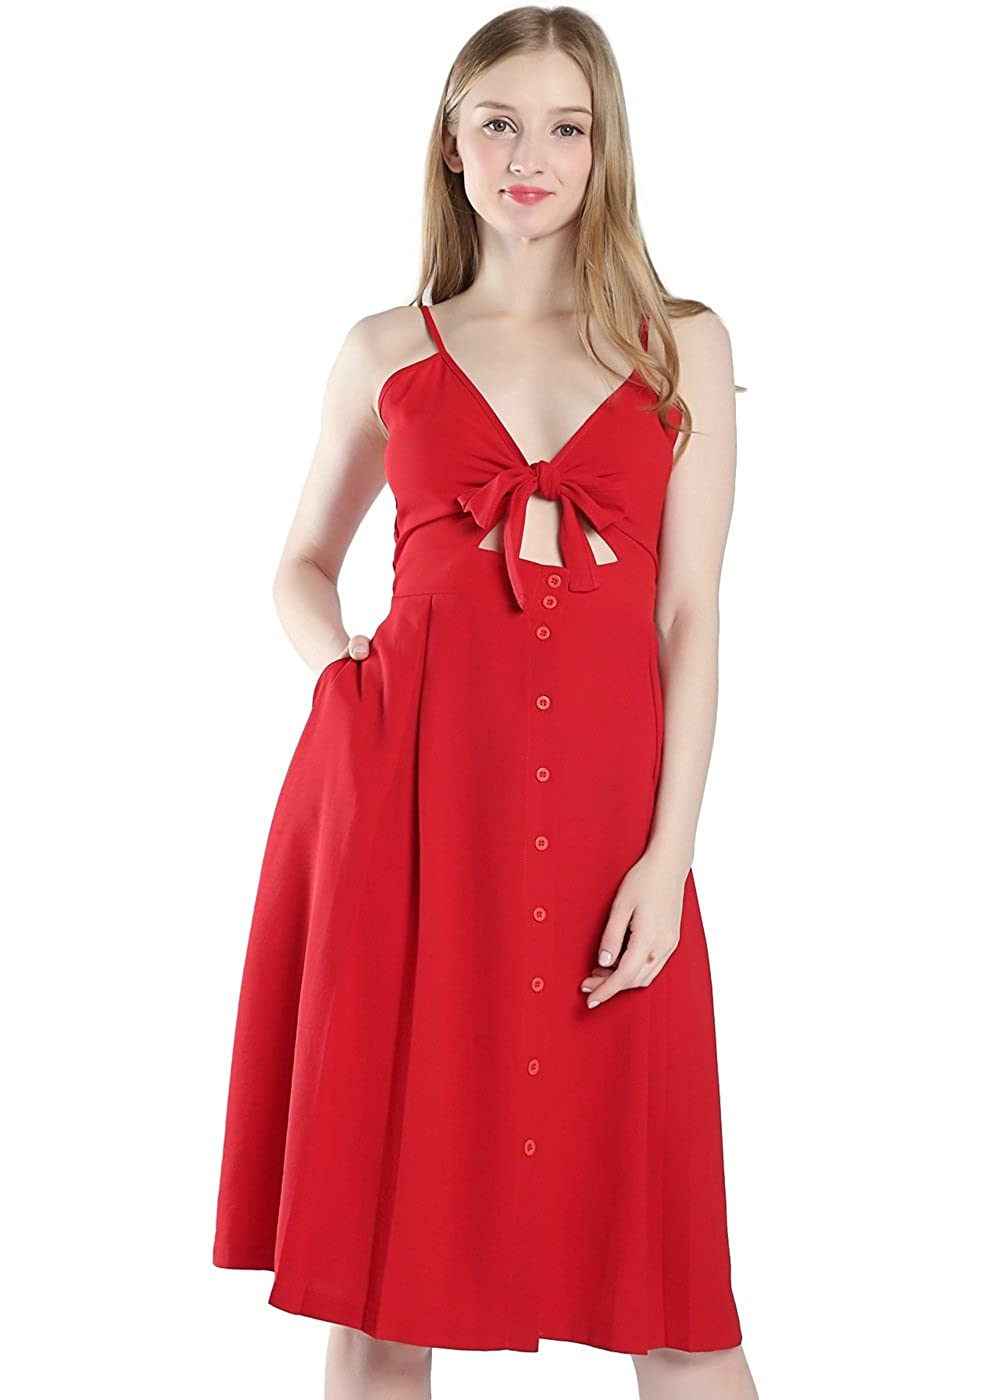 Red Laxllent Dress for Woman Tie Front VNeck ALine Swing Plus Size Womens Casual Summer Dresses